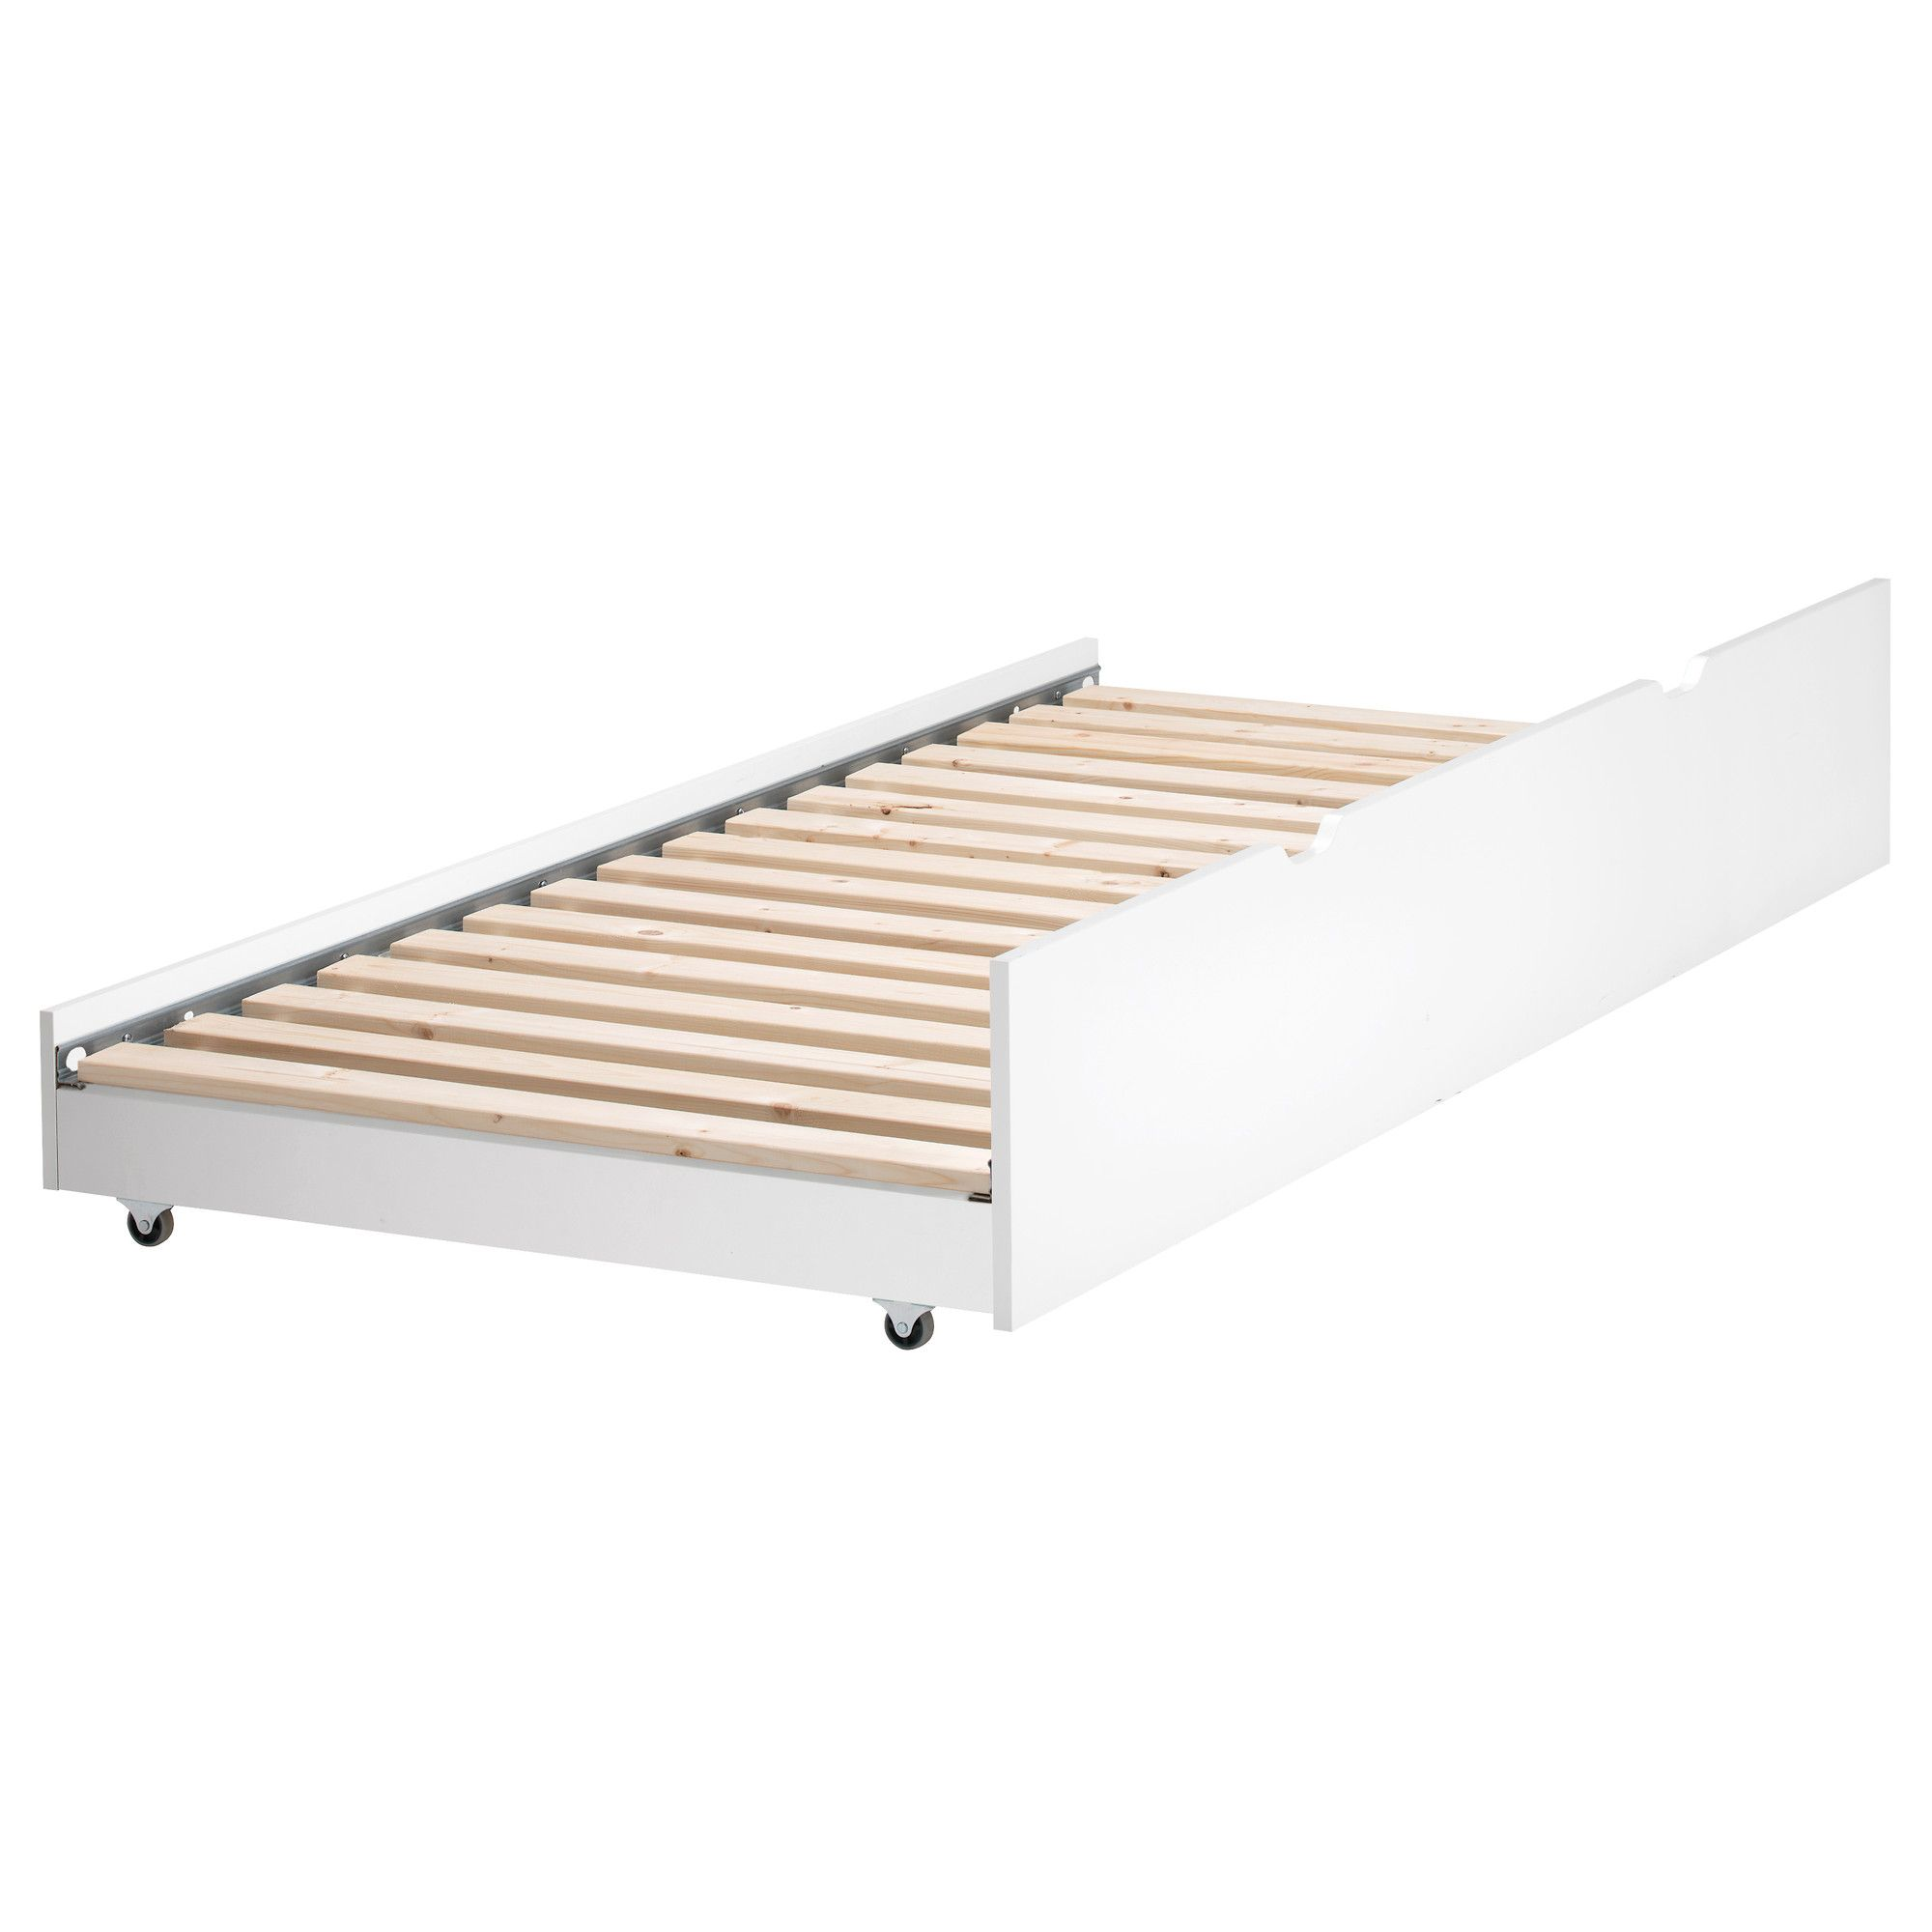 Flaxa Pull Out Bed Ikea 100 Length 74 3 4 Width 39 8 Height 12 1 Mattress 38